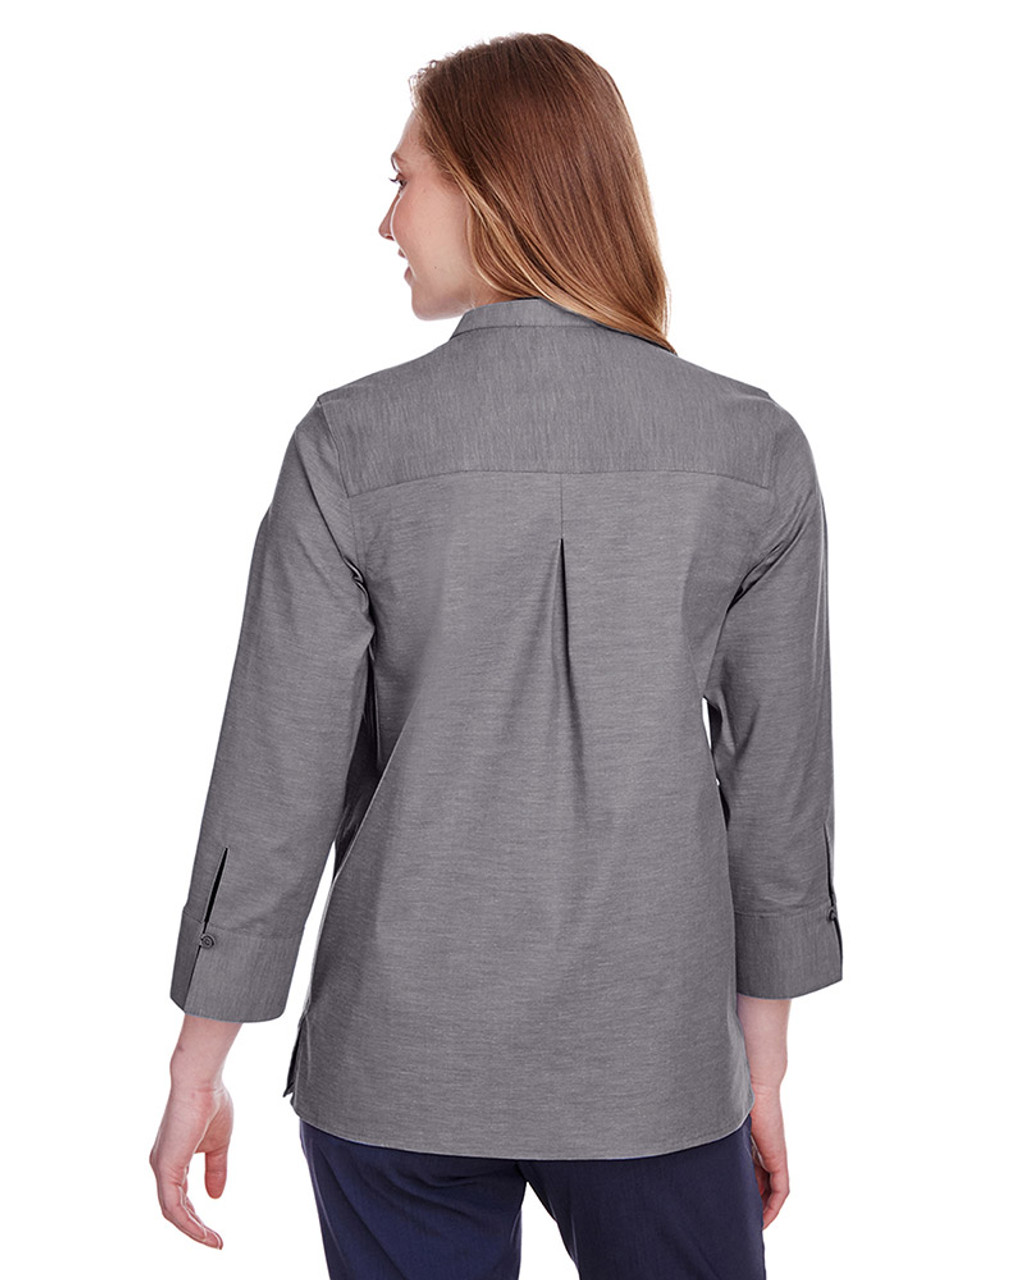 Graphite - black, DG562W Devon & Jones Ladies' Crown Collection™ Stretch Pinpoint Chambray 3/4 Sleeve Blouse | Blankclothing.ca